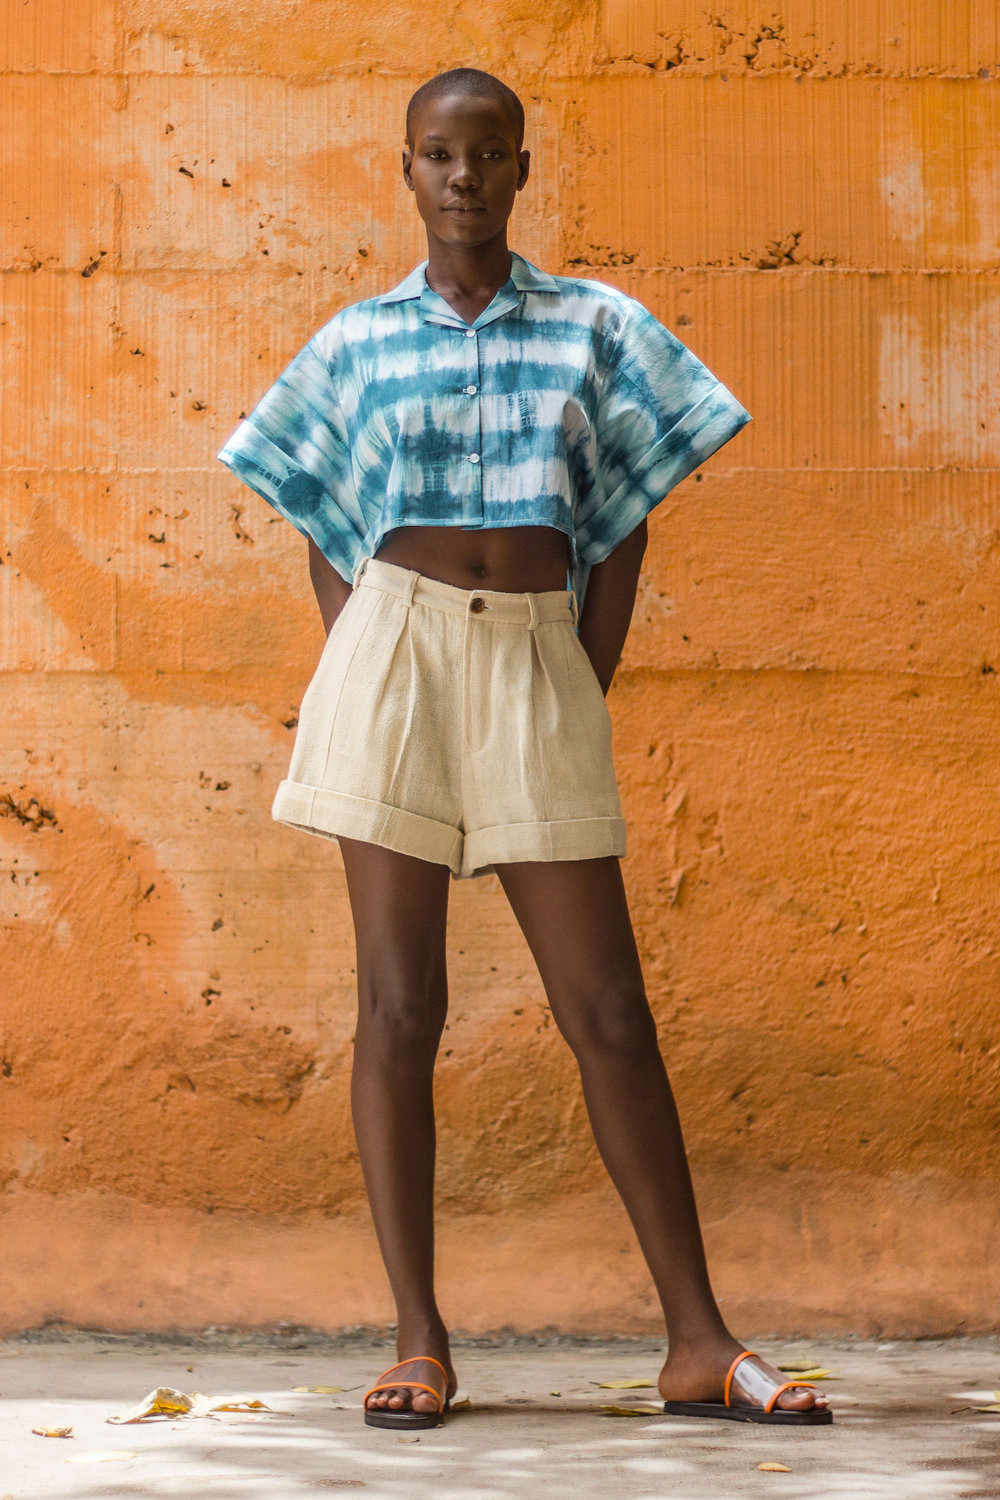 AWL AWALE MADE IN AFRICA FASHION MAN MIXTE WOMAN0190.jpg